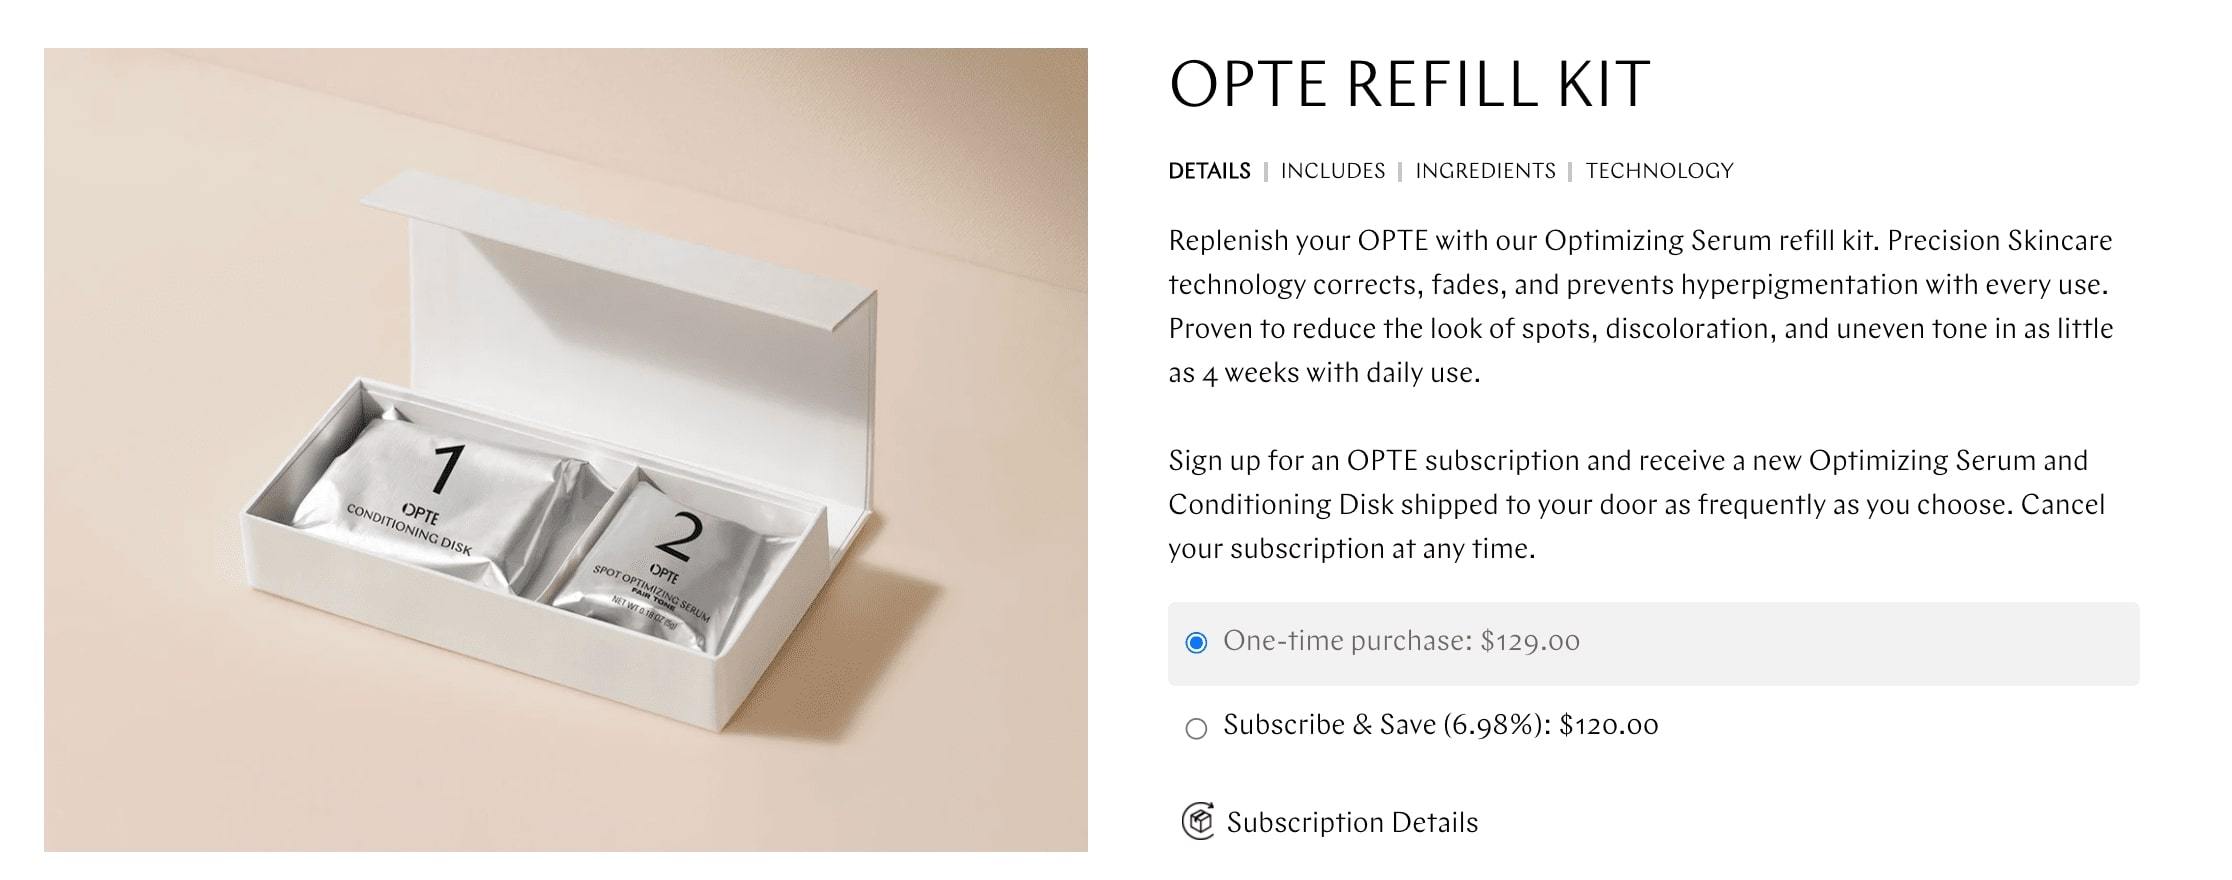 OPTE Refill Kit product page